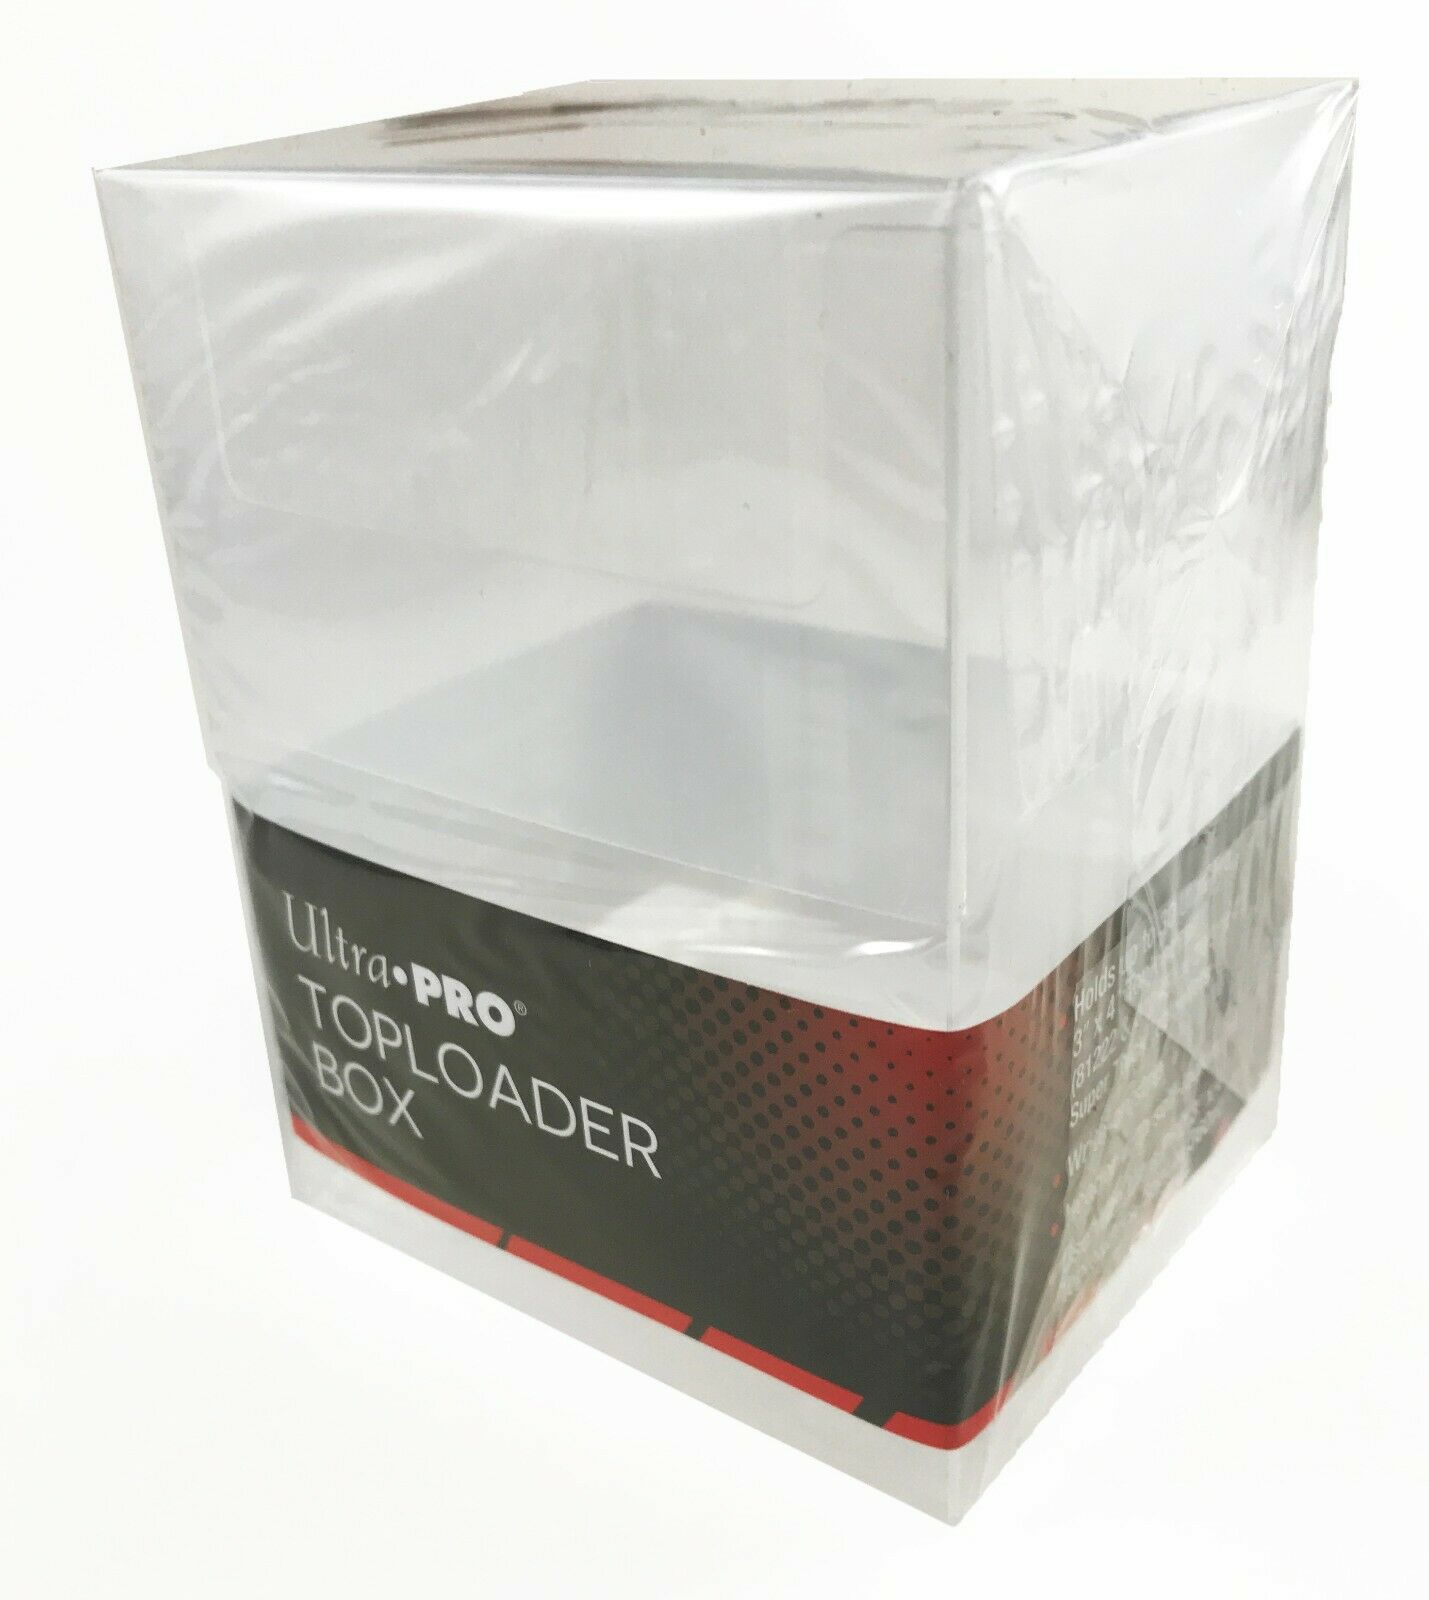 Ultra Pro Toploader Combo Card Sleeves /& Storage Box Includes Toploaders